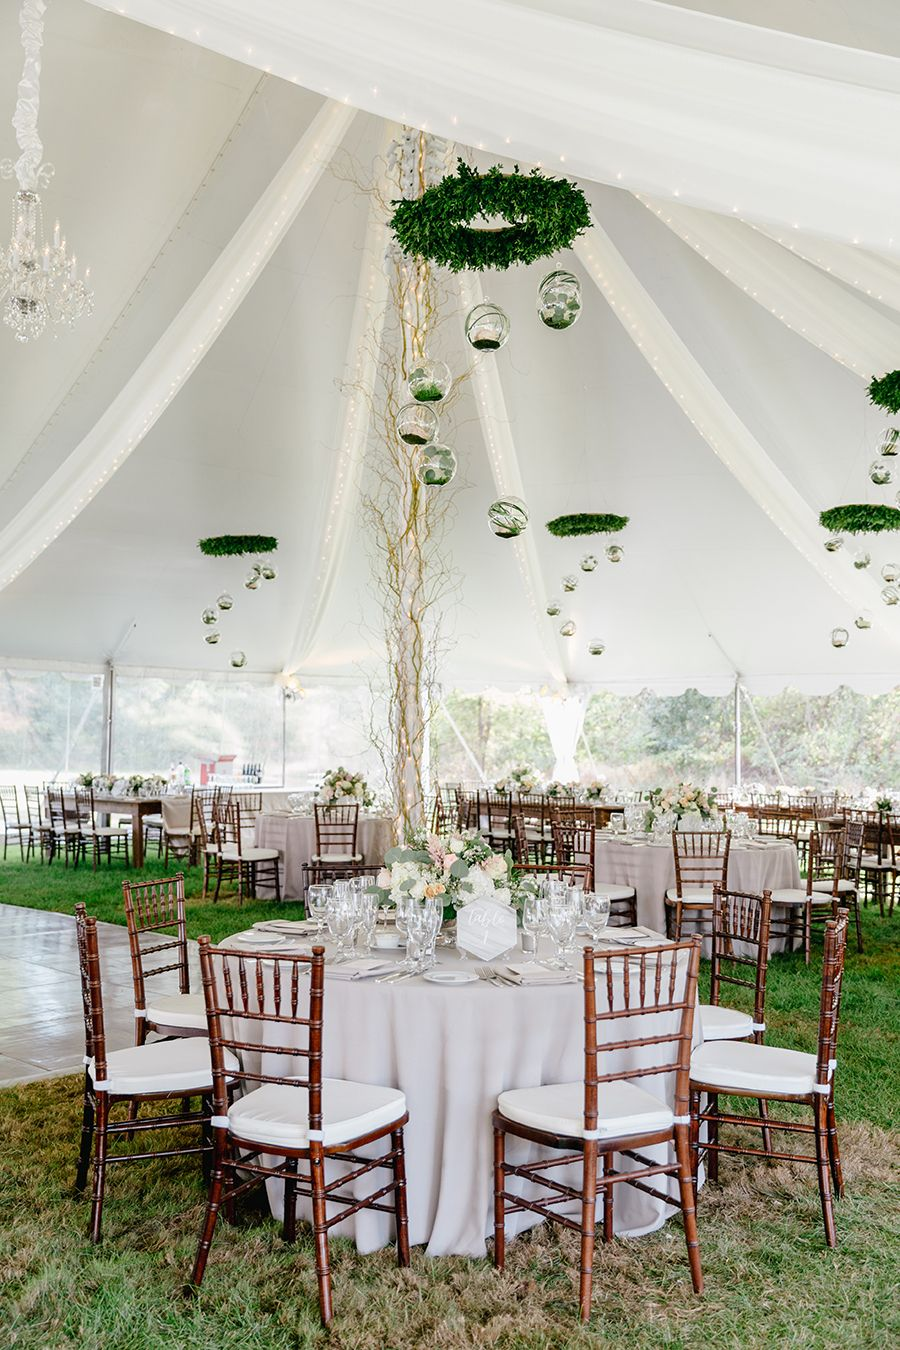 Here's Your Visual Playbook for a Romantic, Whimsical Fete